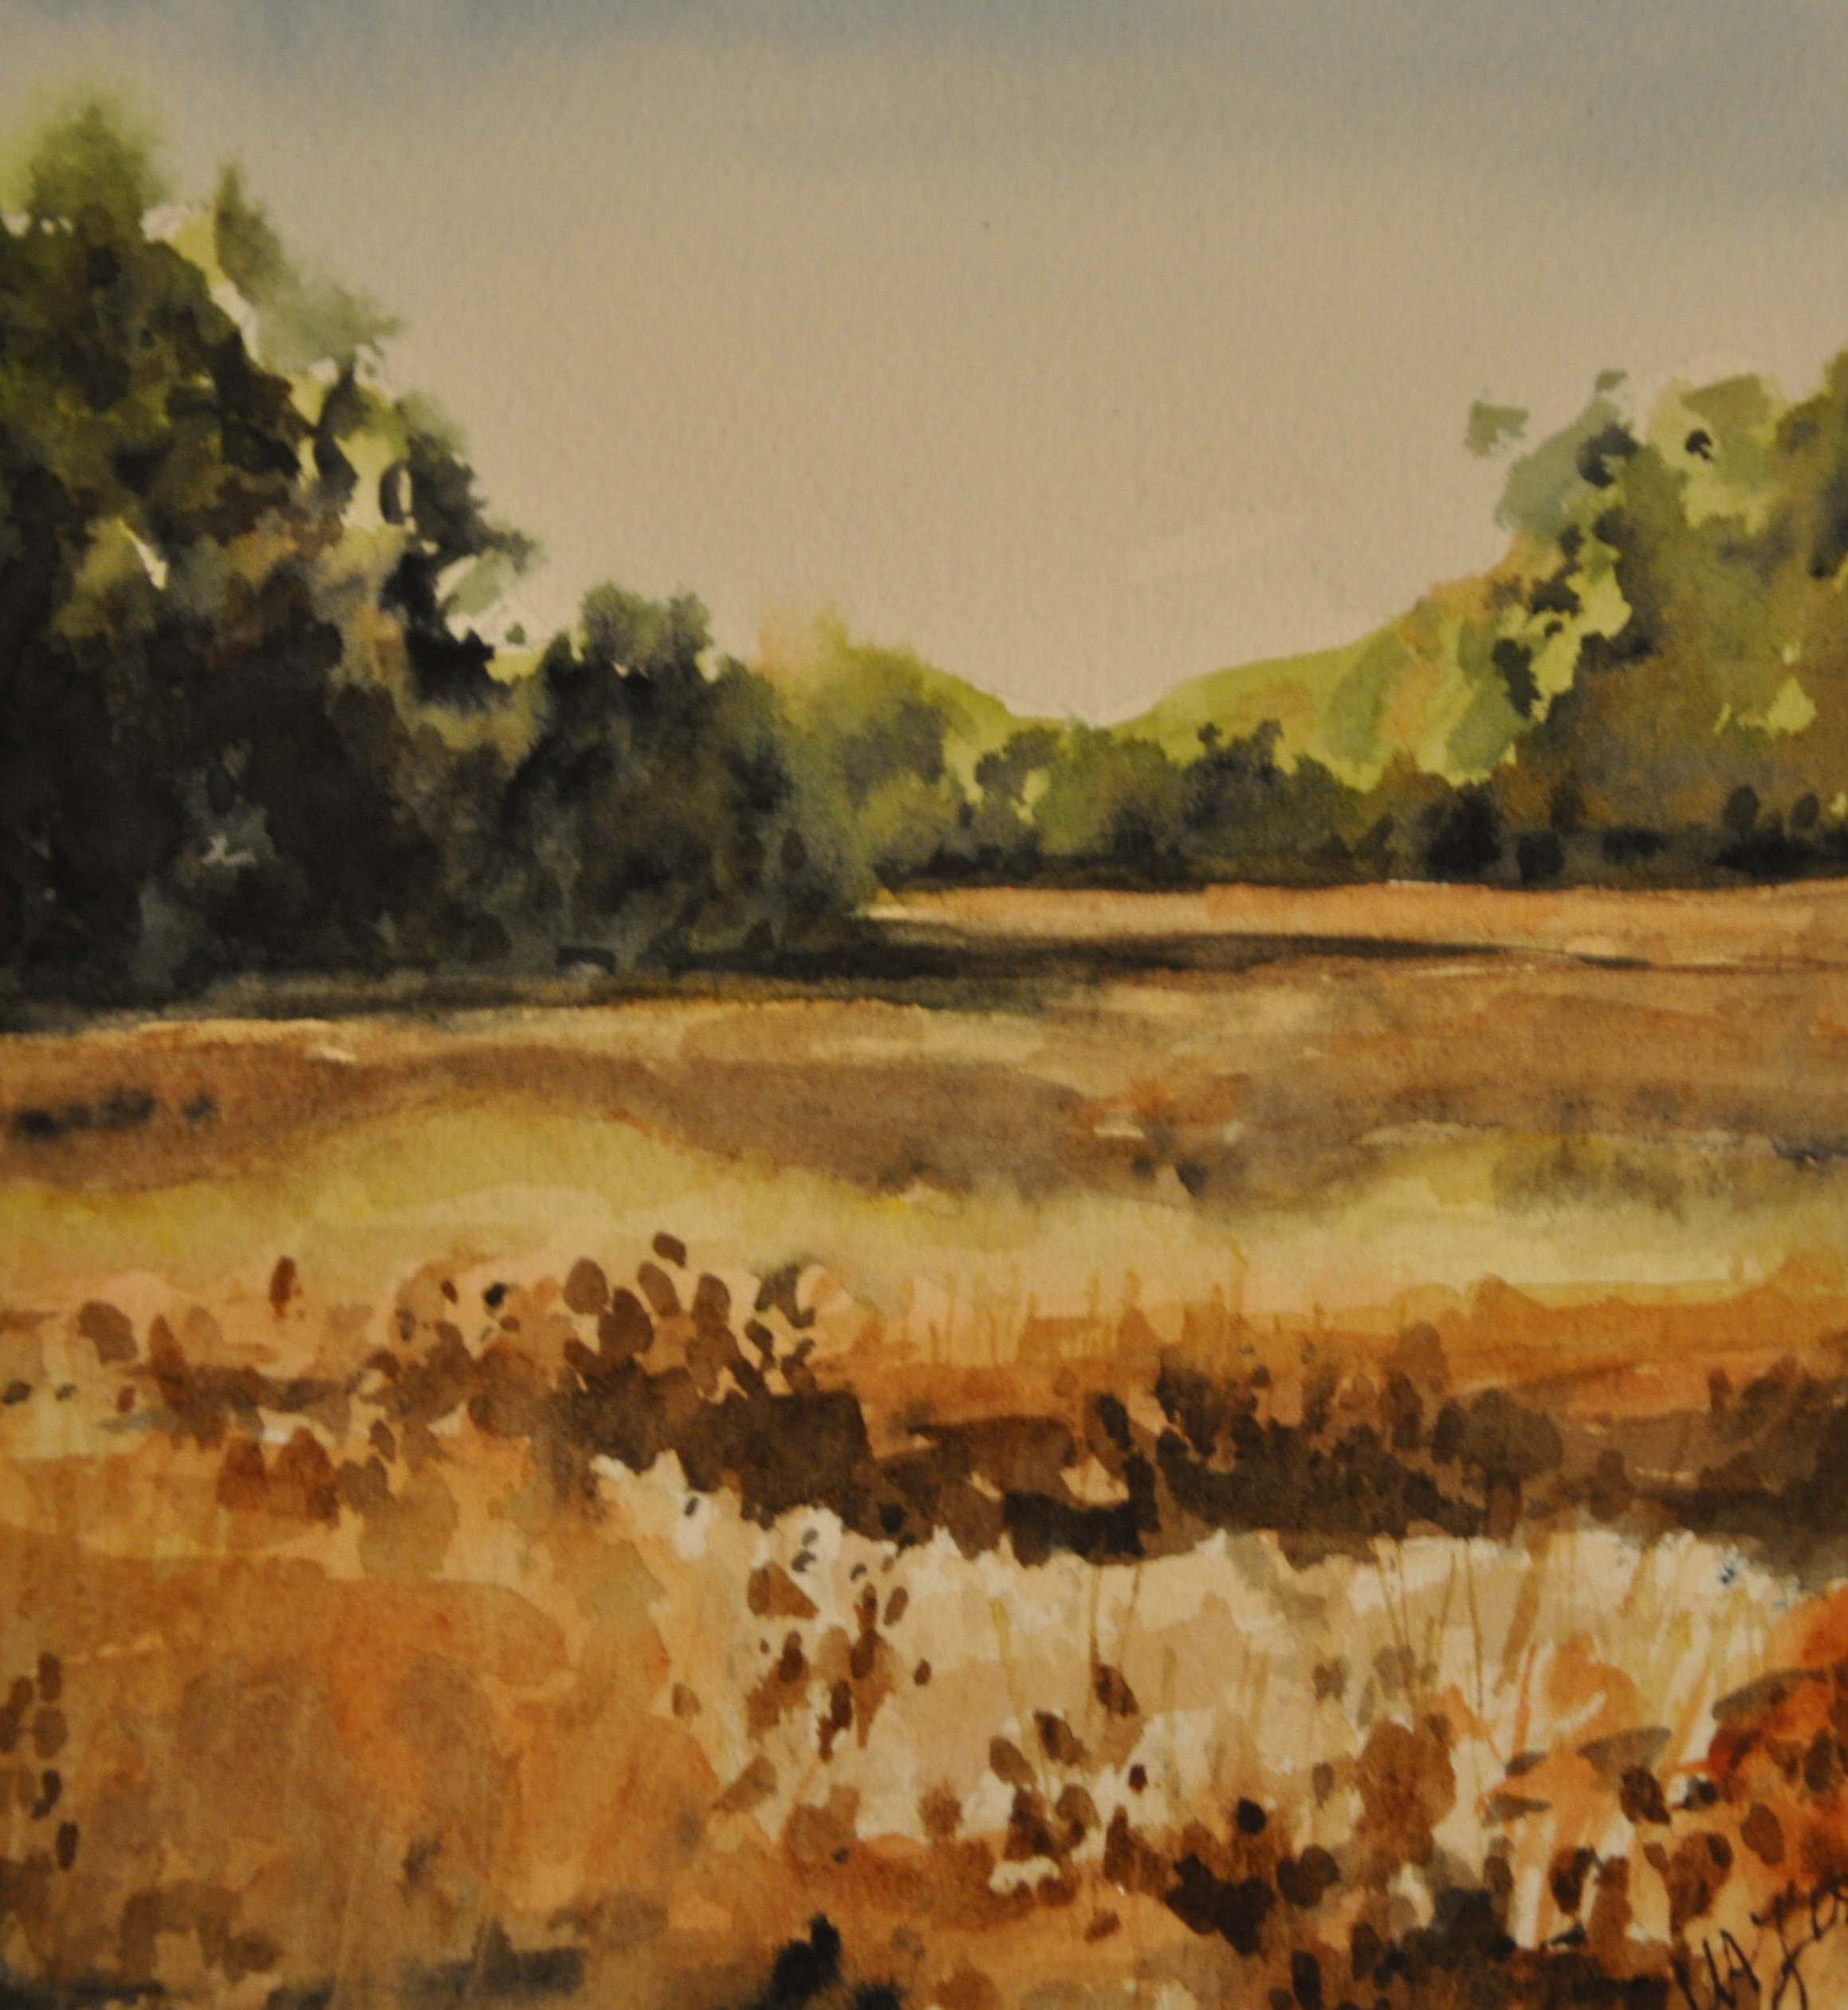 The Homeplace, Watercolor, 2008